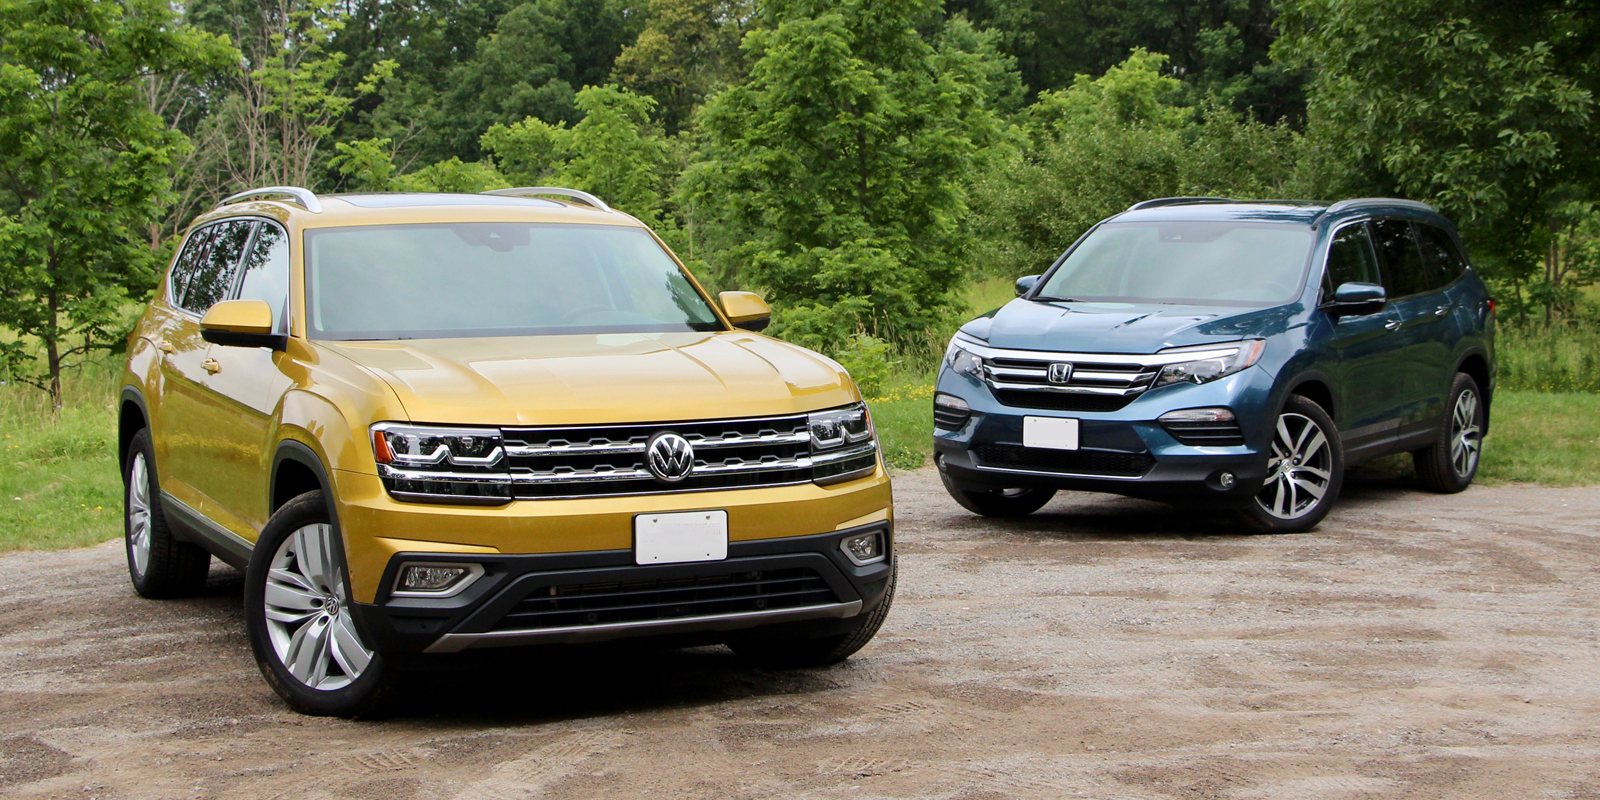 Best 3rd Row Suv 2017 >> The Atlas Is Cars Com S Best 3 Row Suv Of 2017 Vwvortex